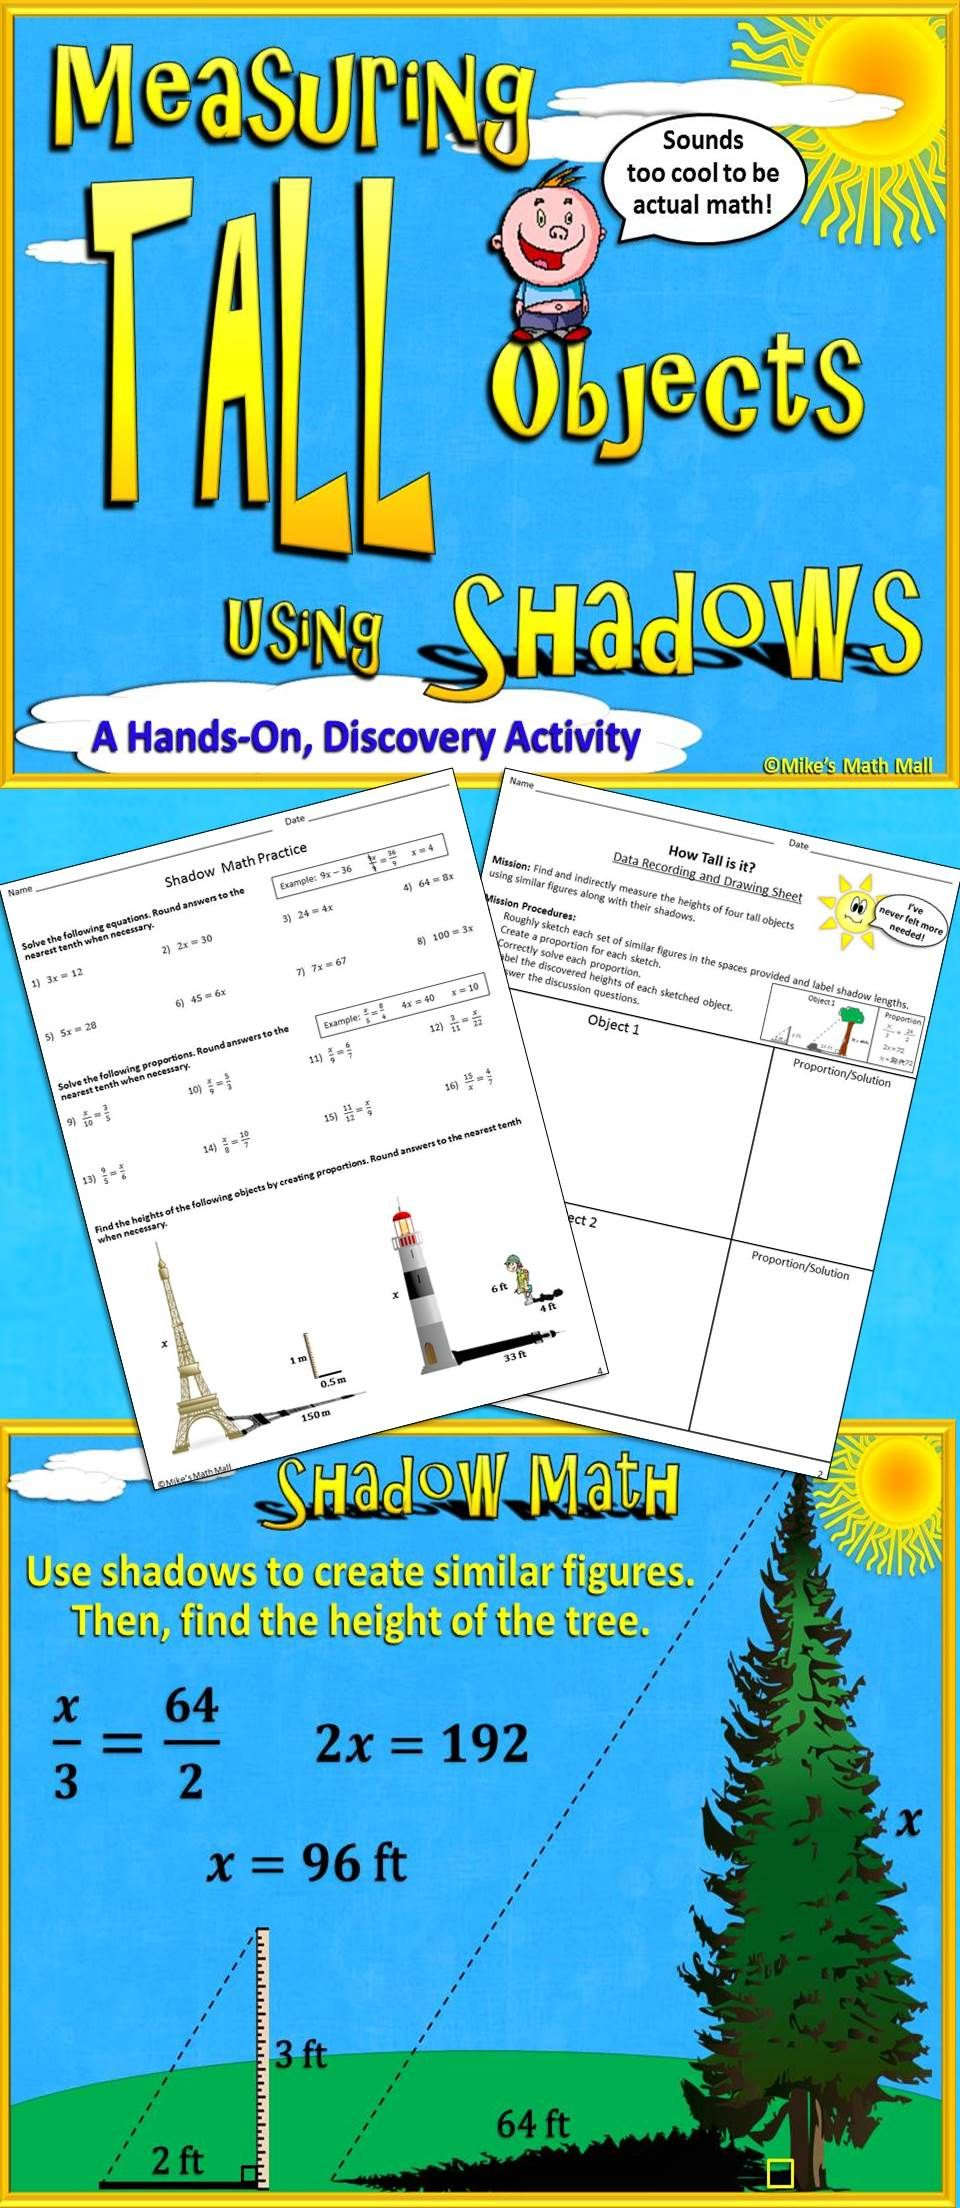 Measuring Tall Objects Using Shadow Math Outdoor Discovery Activity